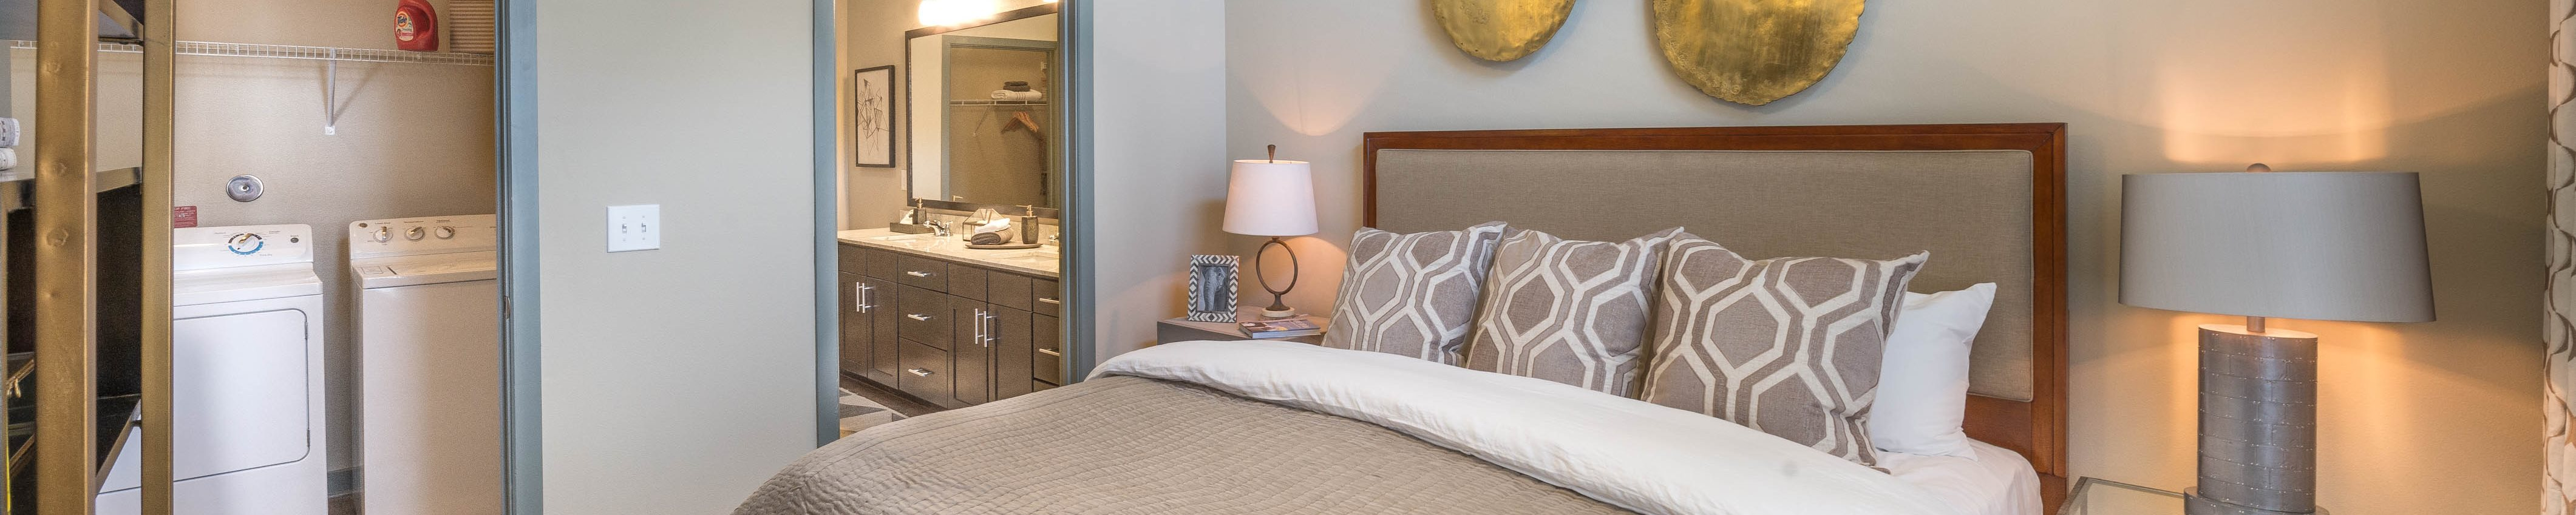 Bedroom with gold decorations on the wall, en suite bathroom, and night stands with lamps